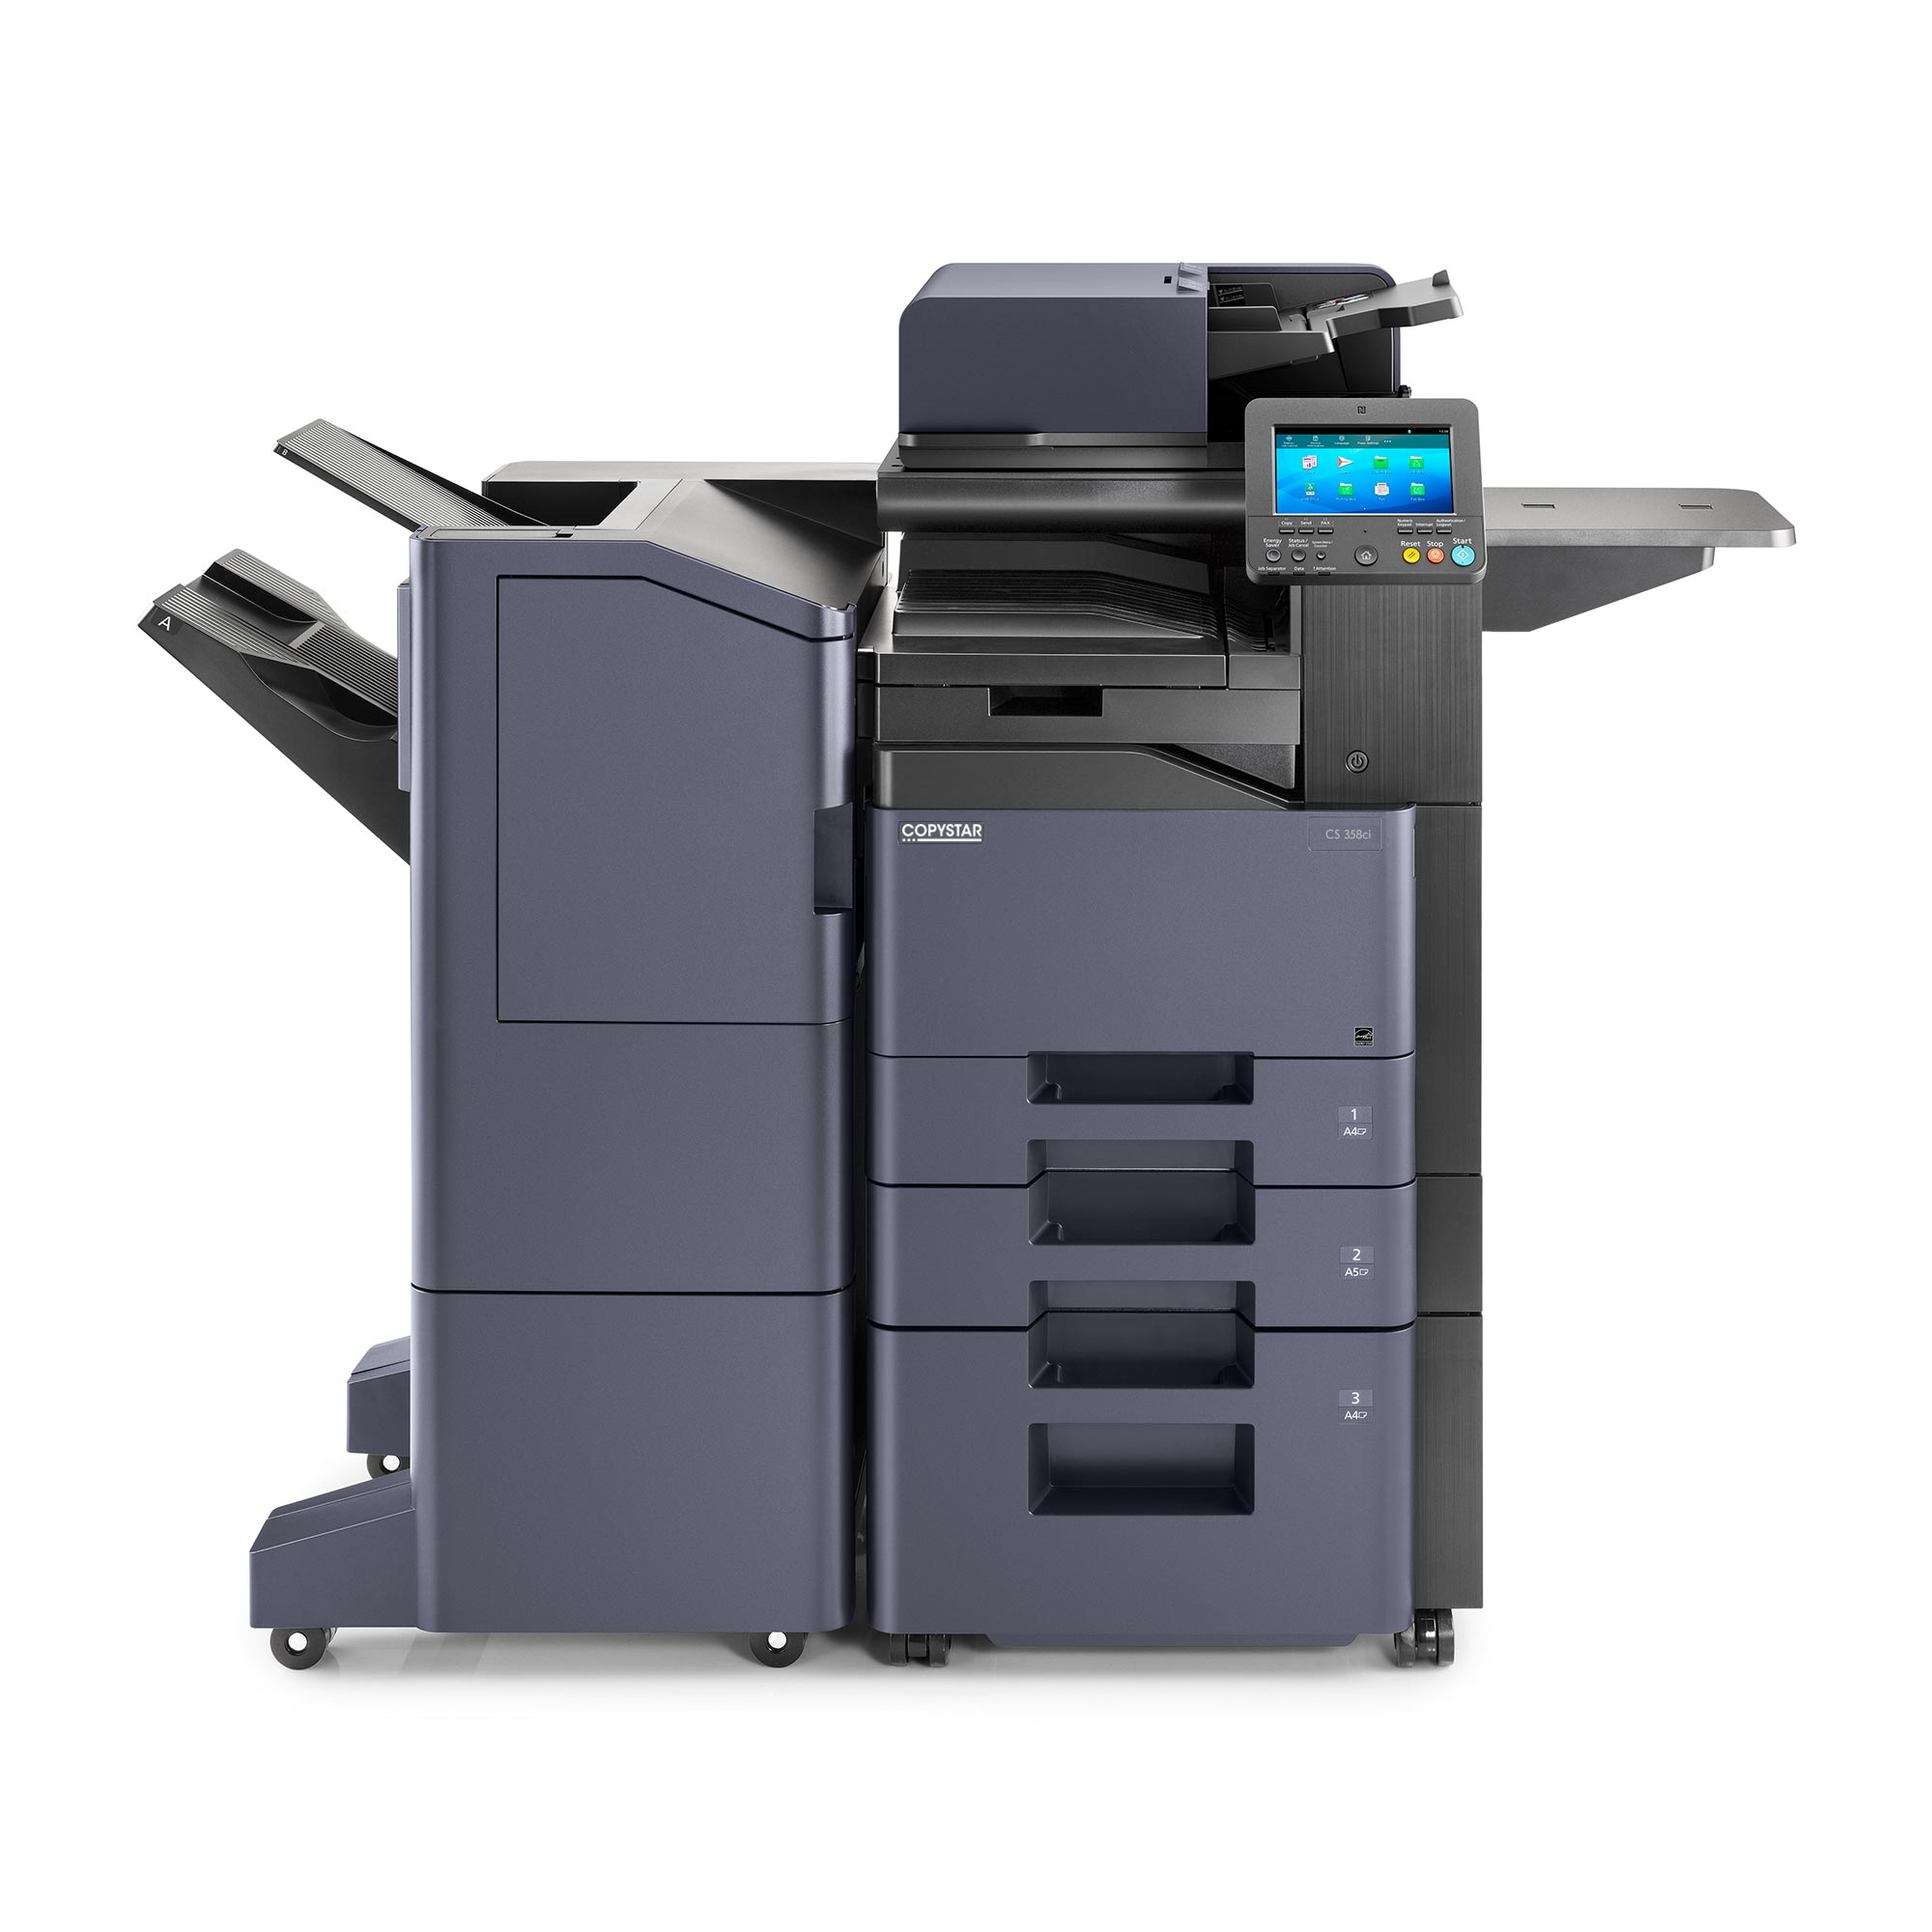 Kyocera CS_358ci - Copy Machine Sales